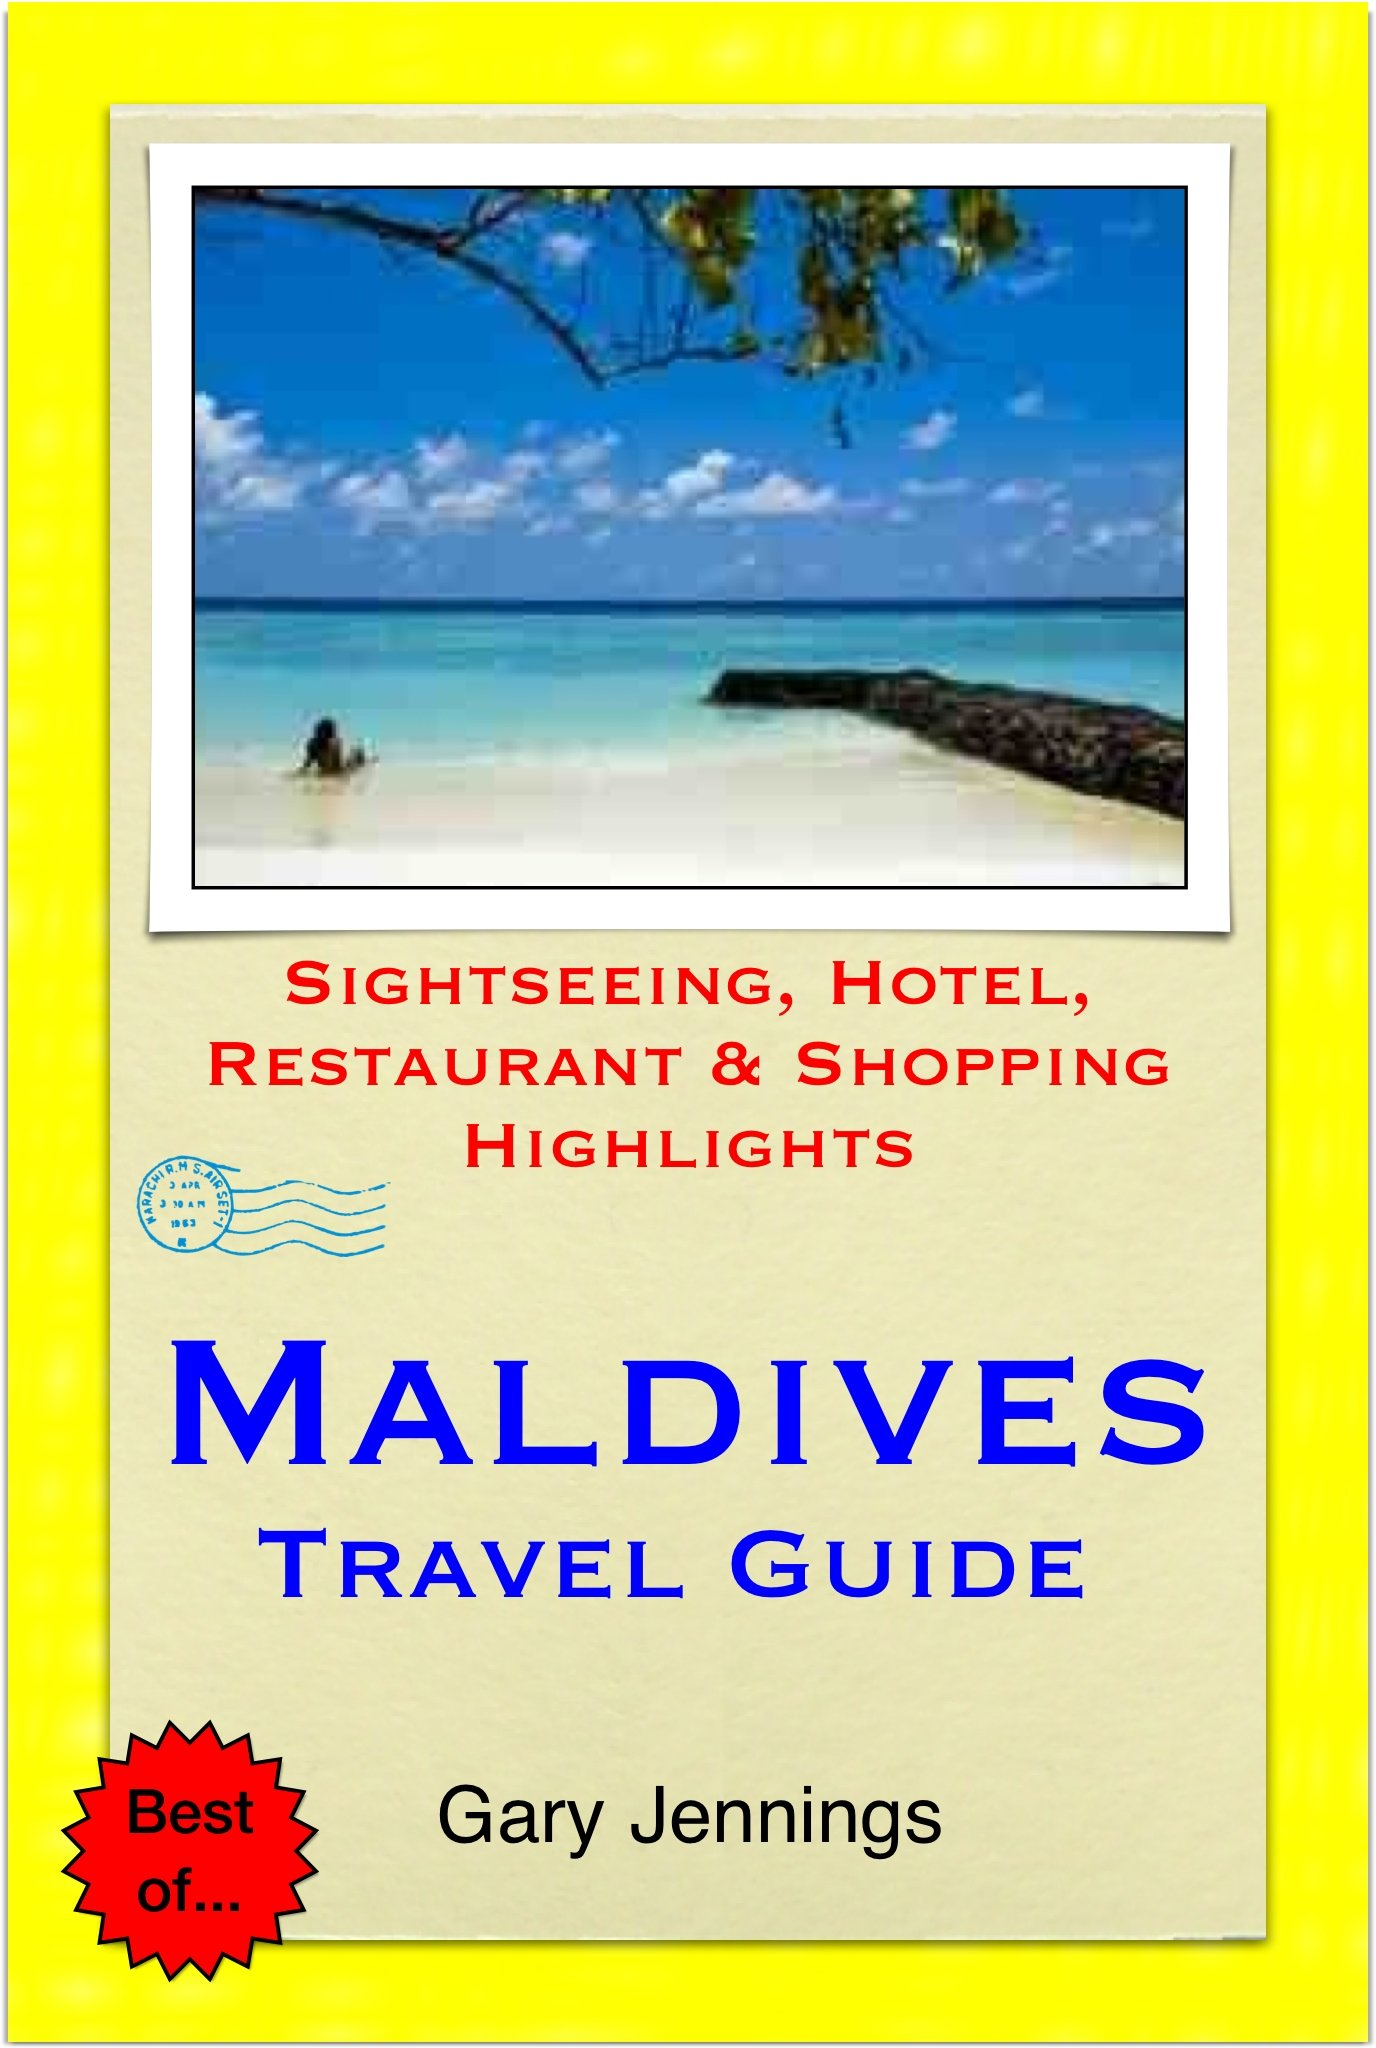 Travel Guide Maldives Maldives Travel Guide